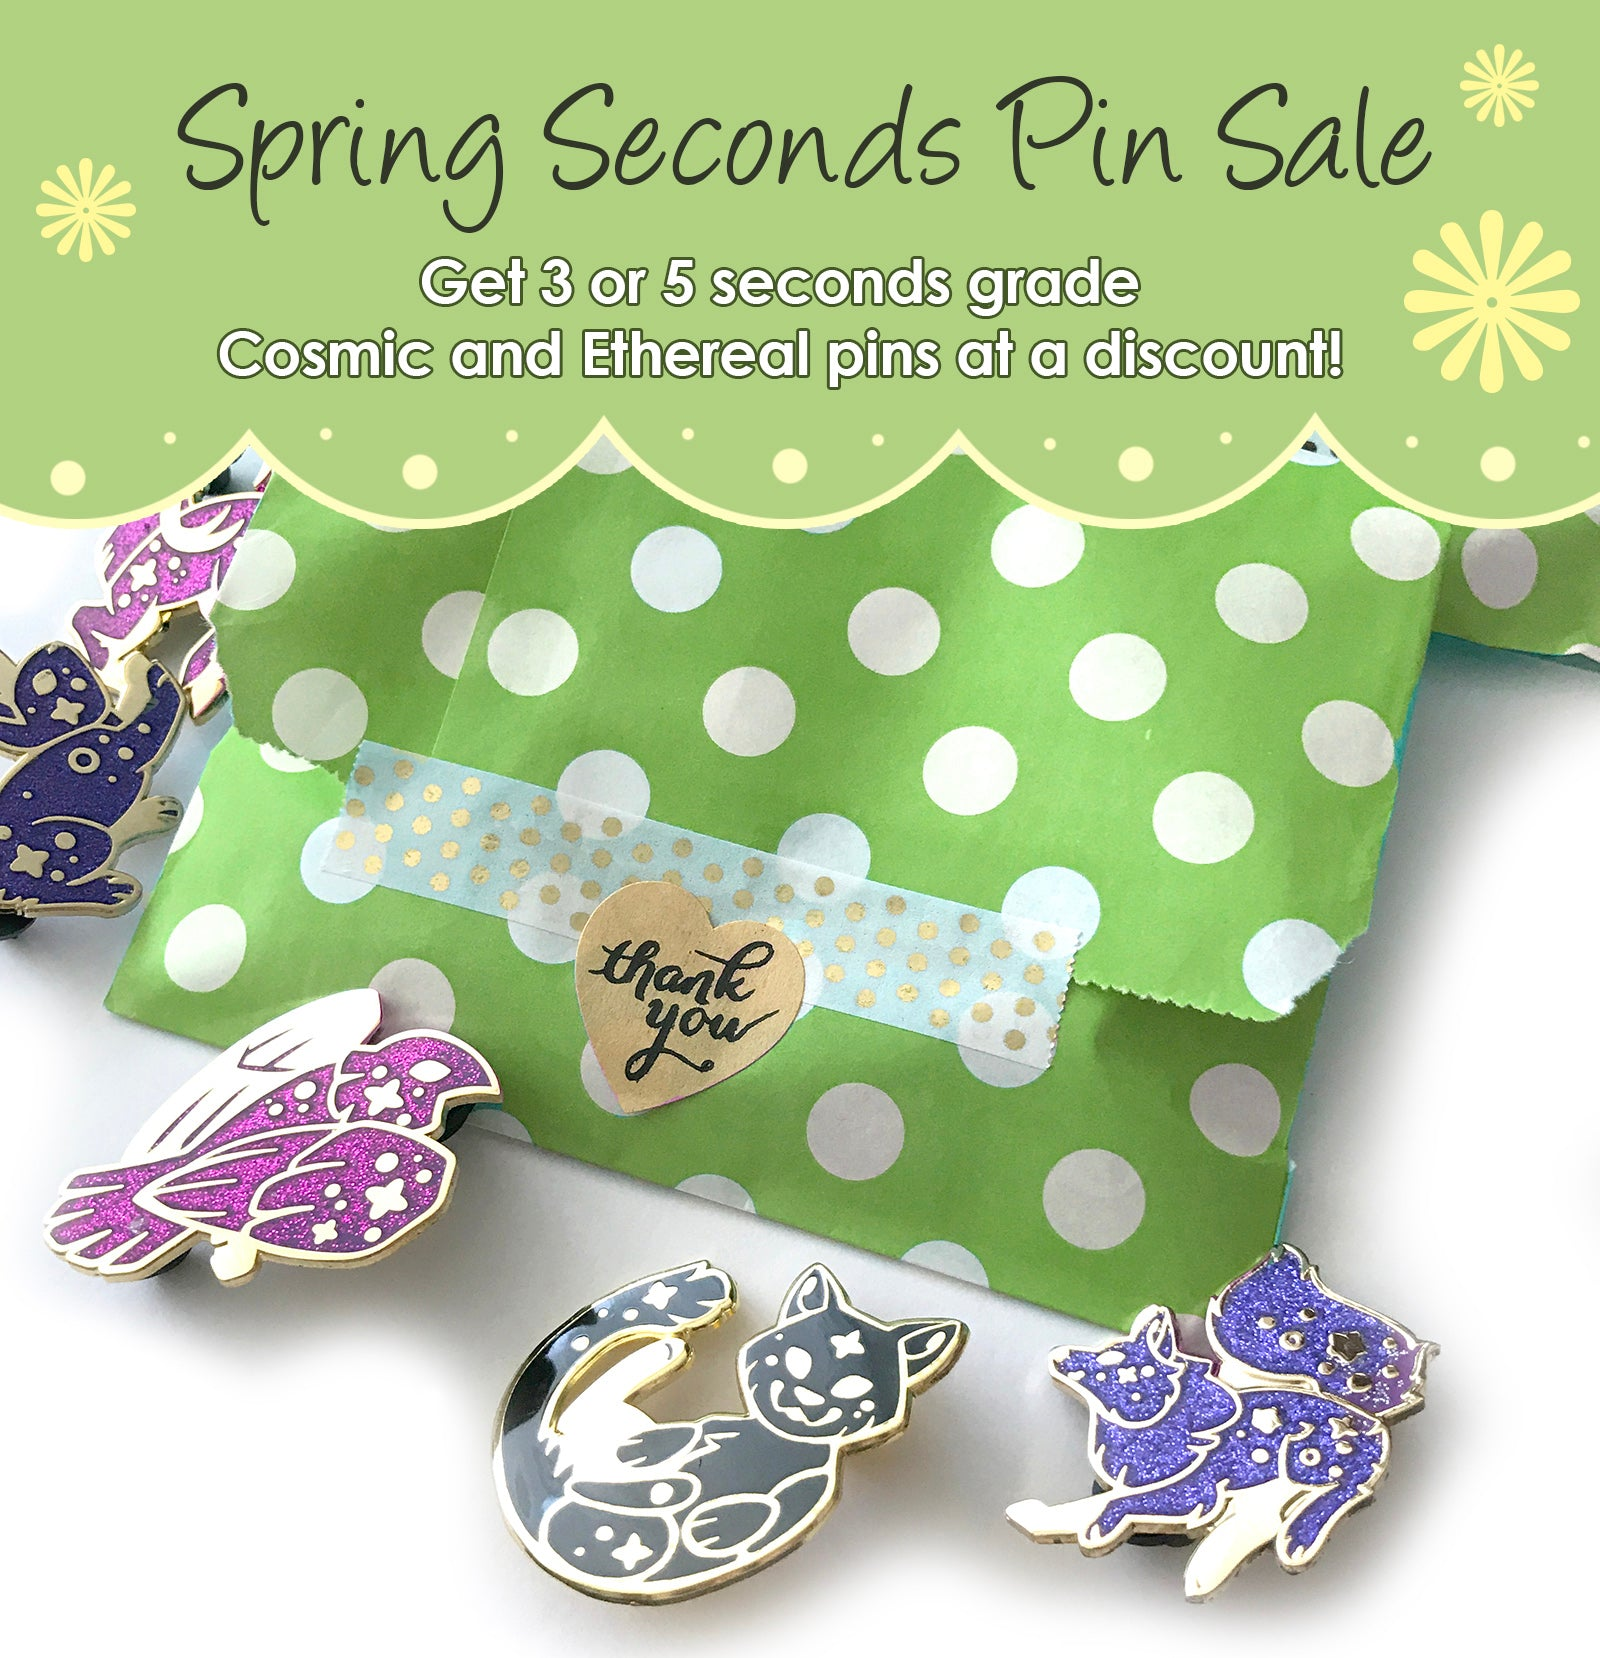 SPRING SECONDS PIN SALE - Mystery Grab Pin Bag